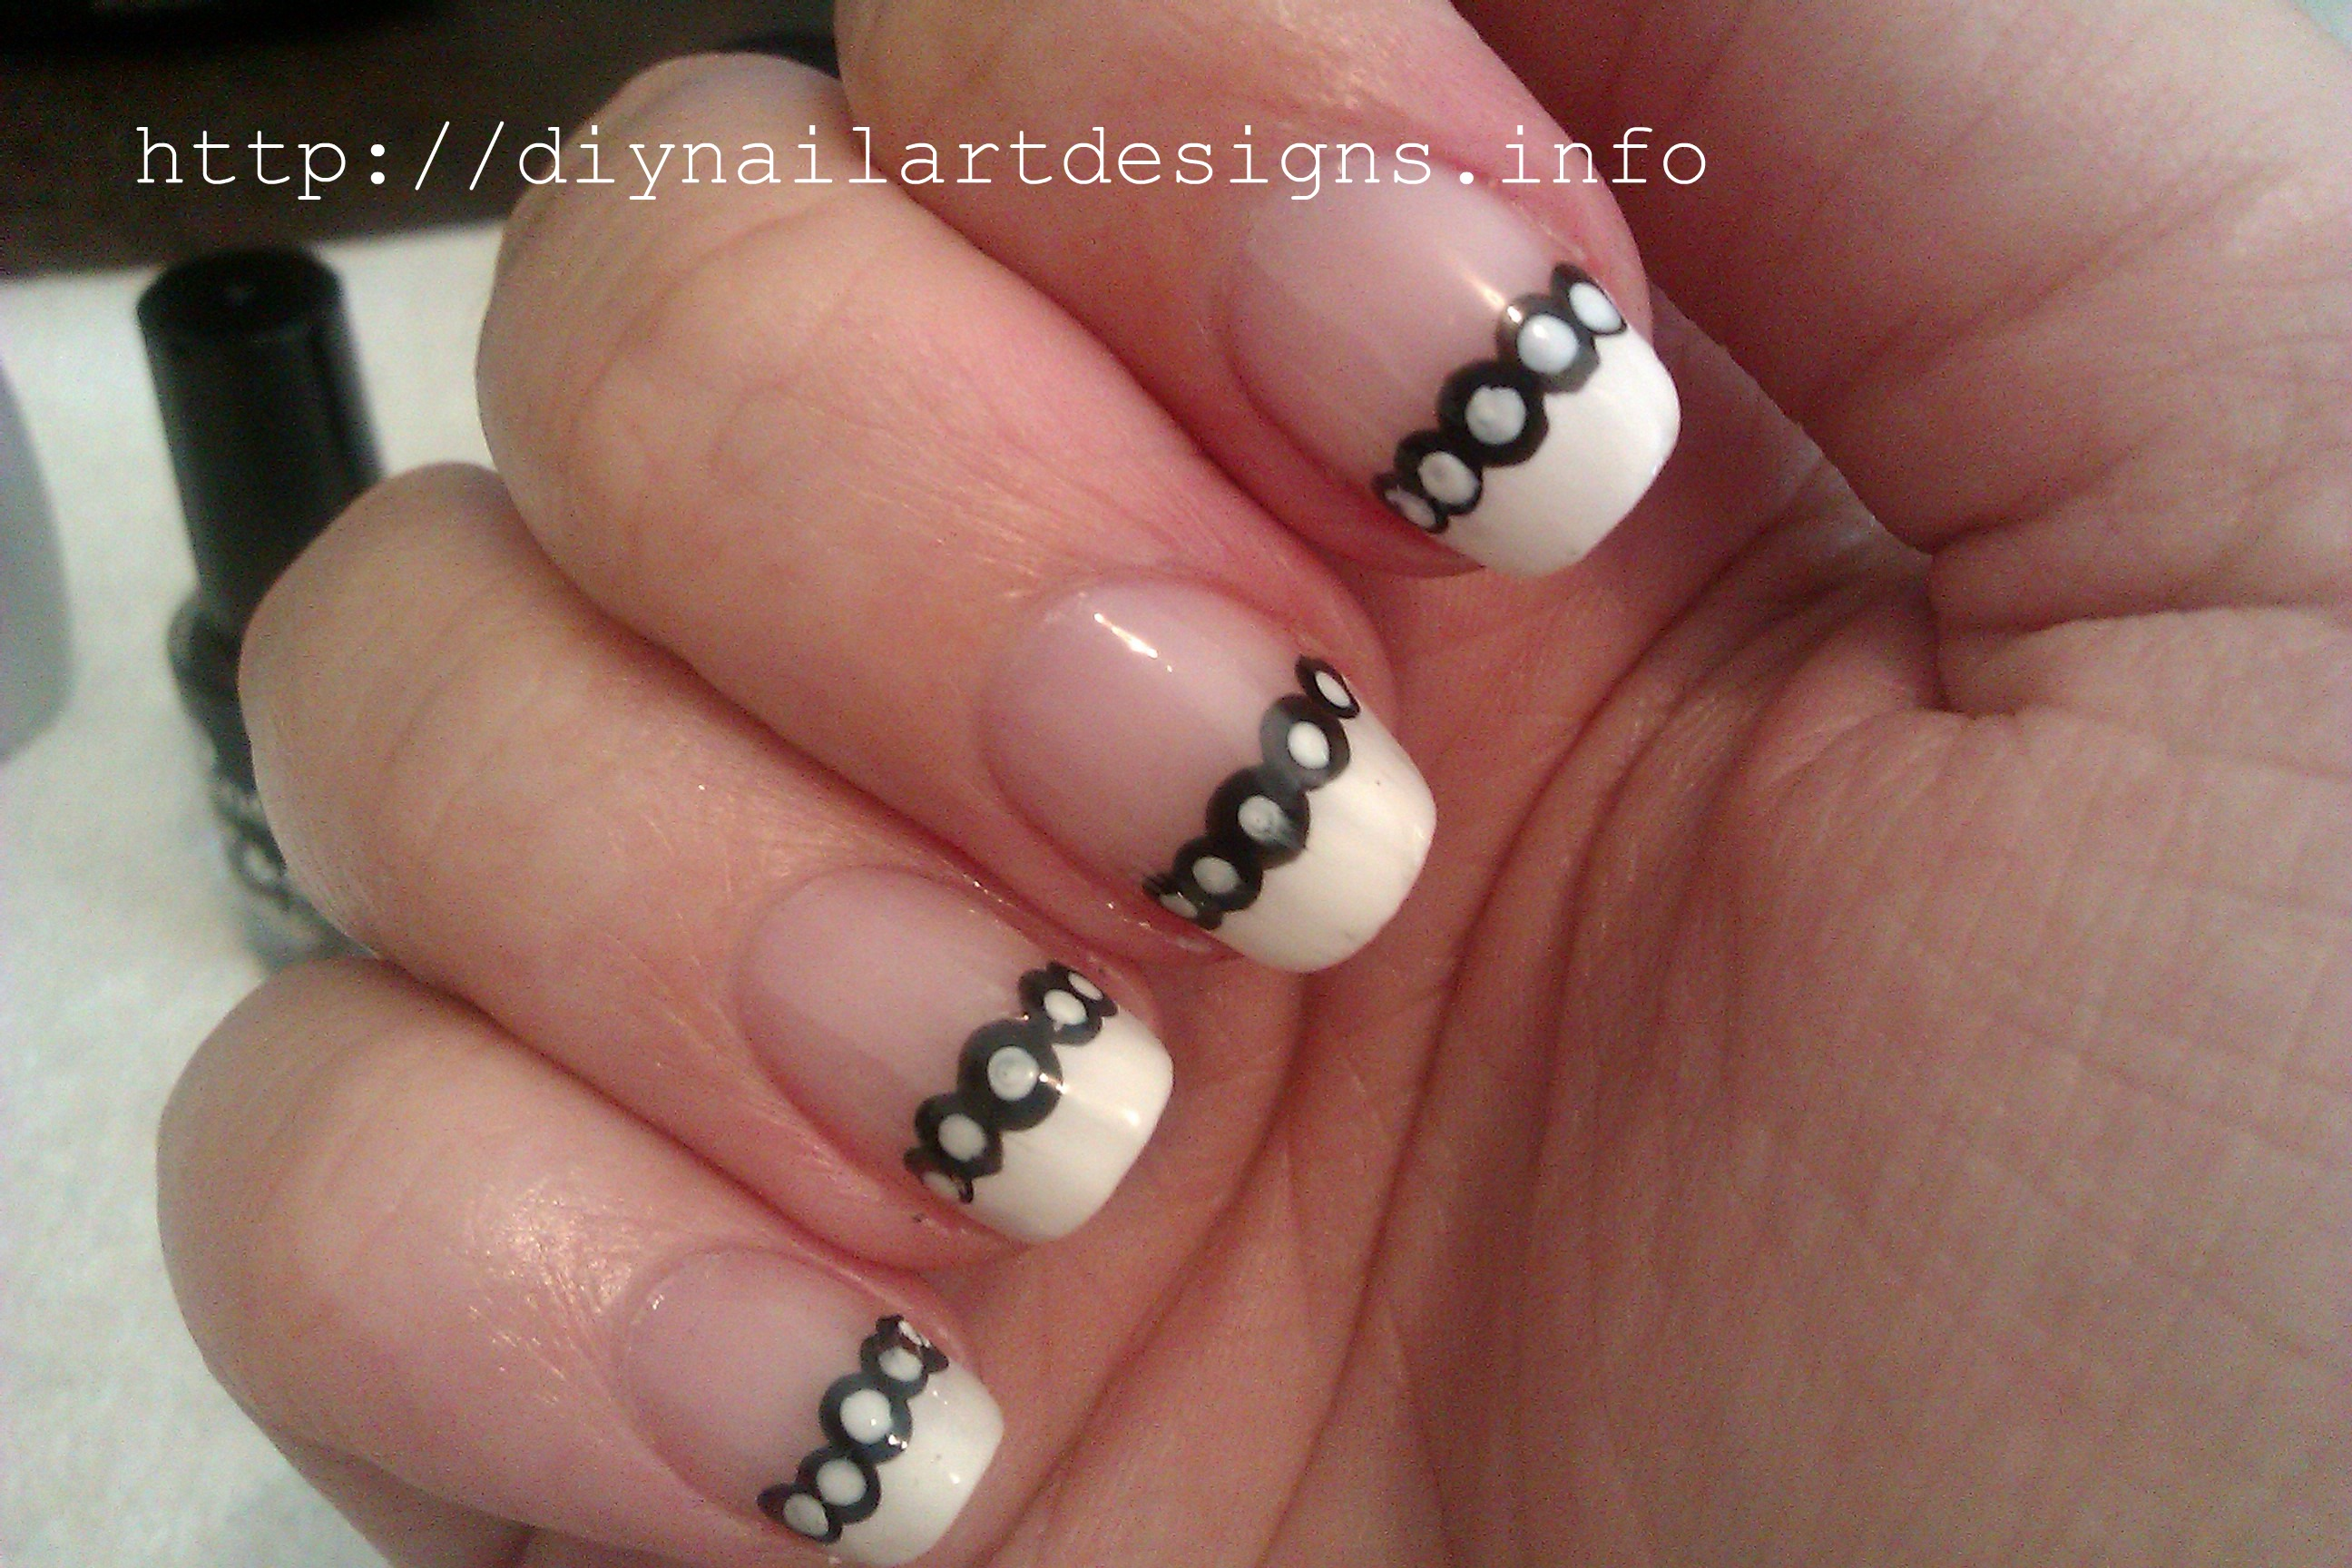 NAIL ART DESIGN FRENCH MANICURE - Home Galeries